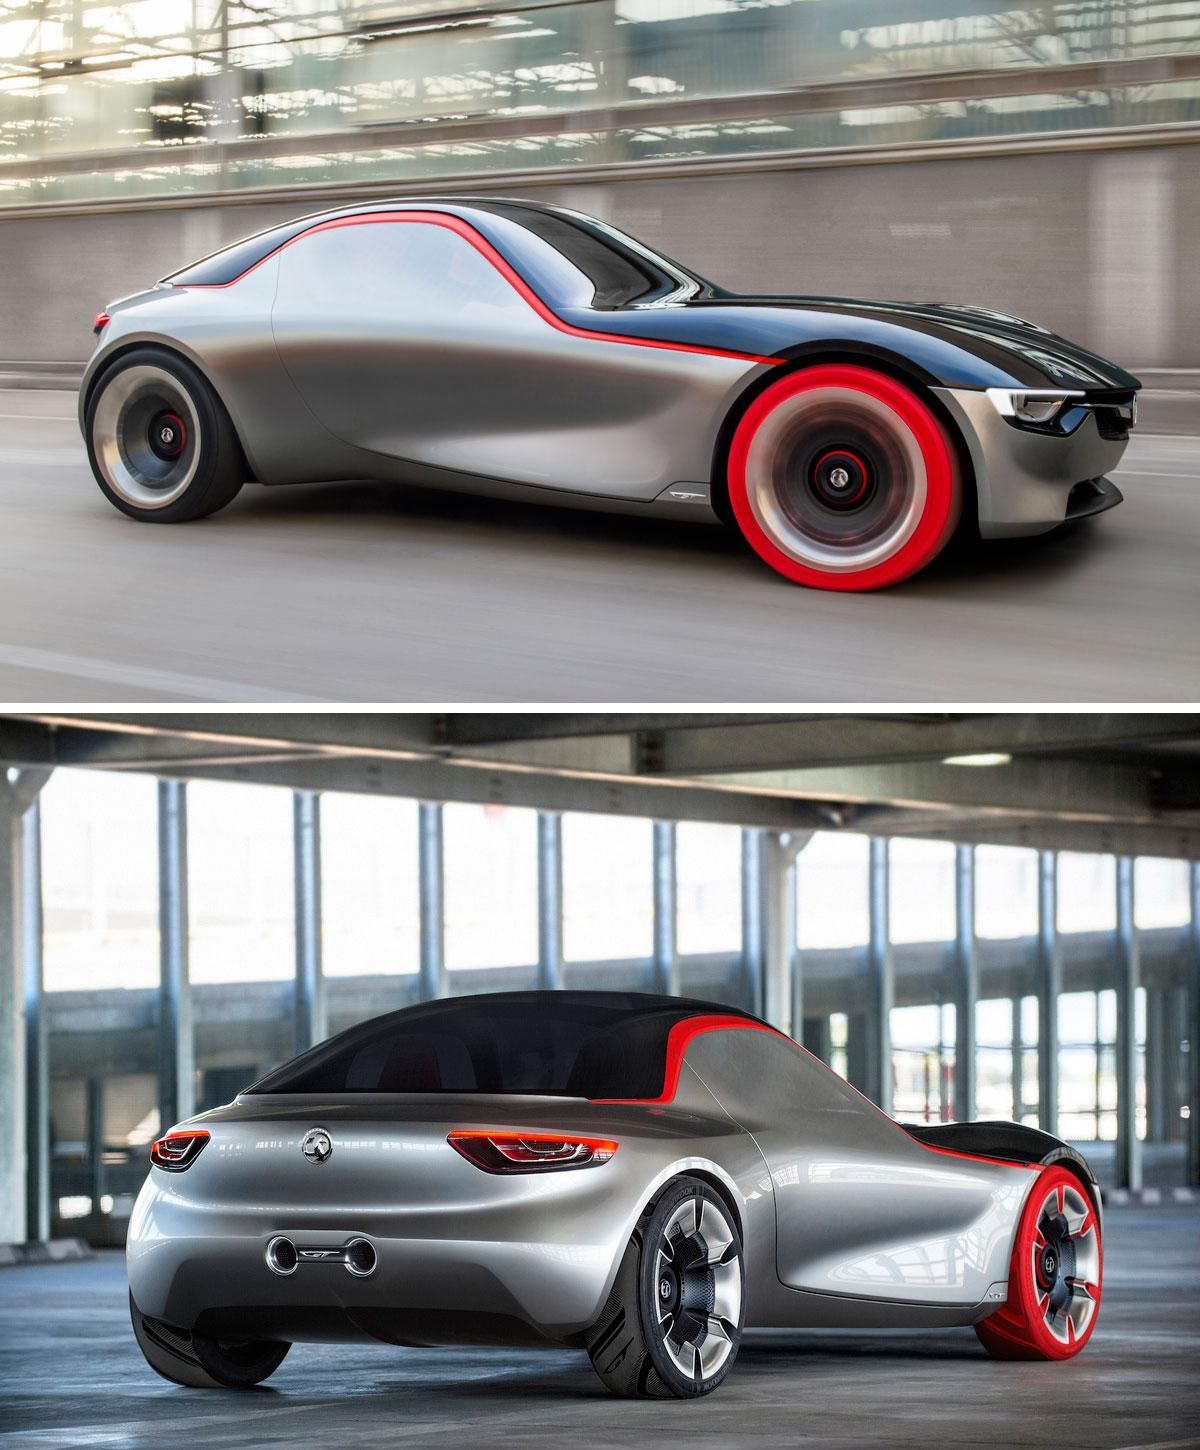 Ignore The Red Tires. This Concept Could Be The Next Opel